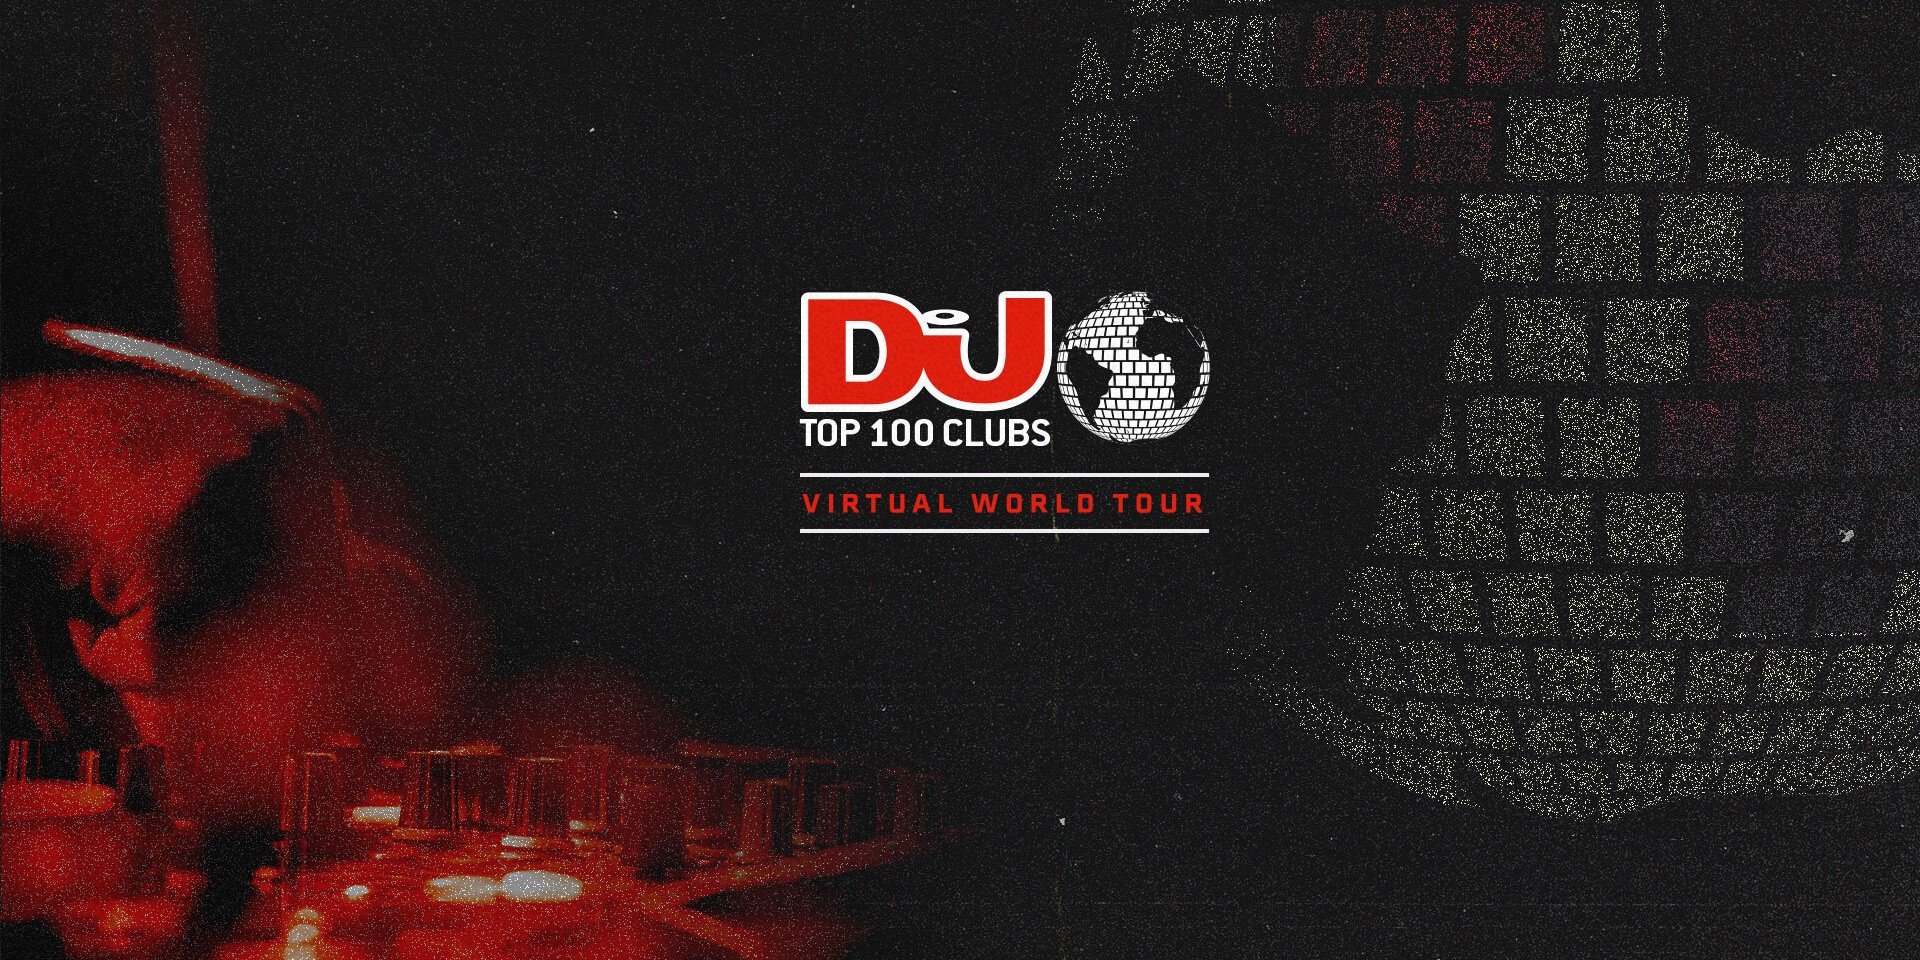 DJ Mag to launch Virtual World Tour alongside Top 100 Clubs poll this May